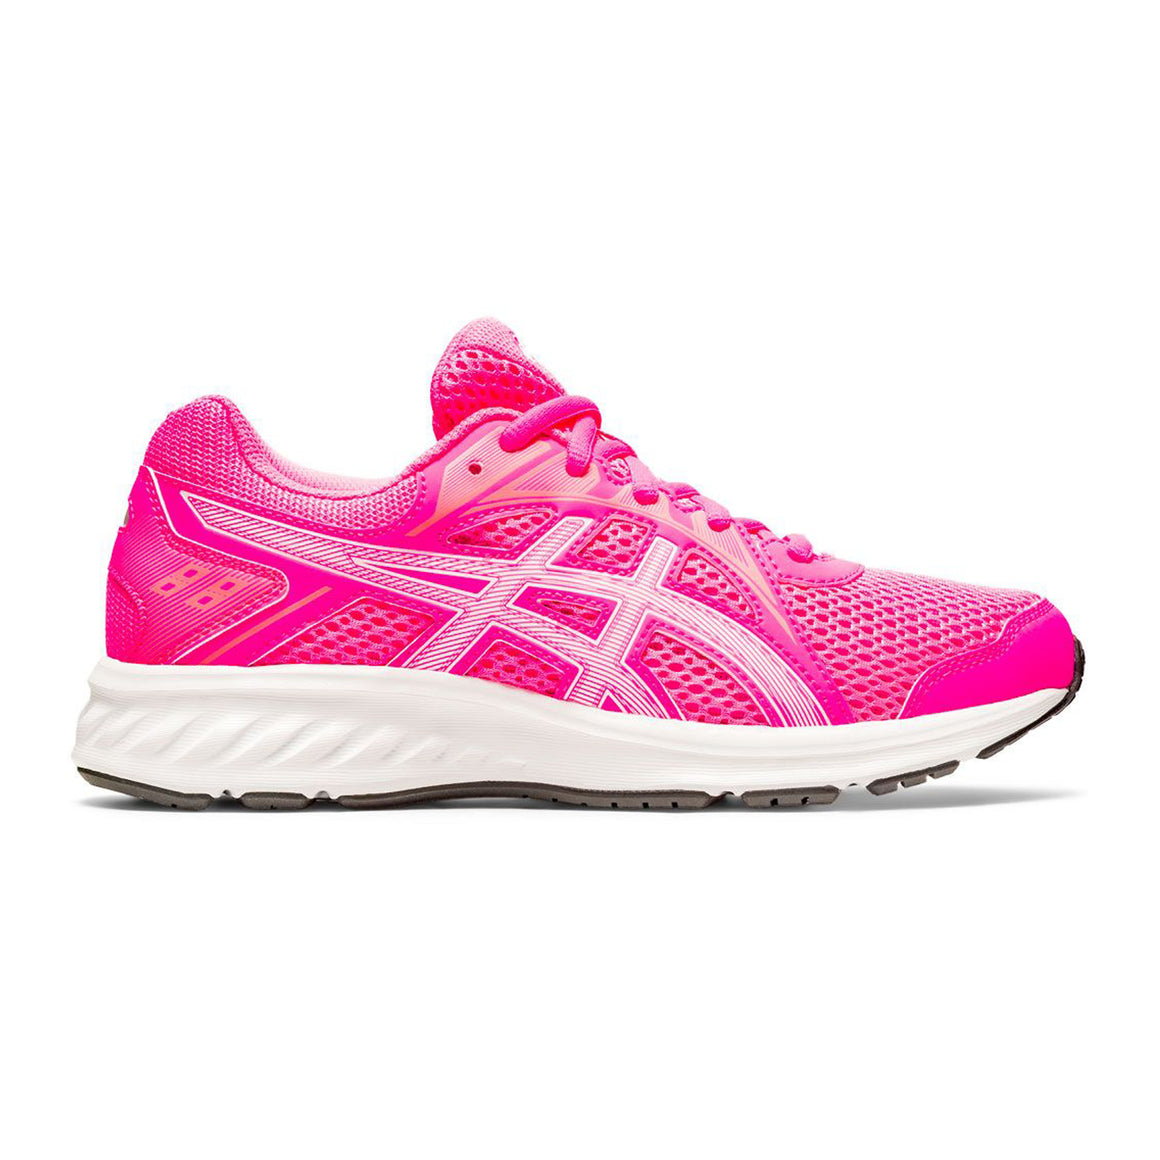 JOLT 2 GS Running Shoe for Kids in Pink